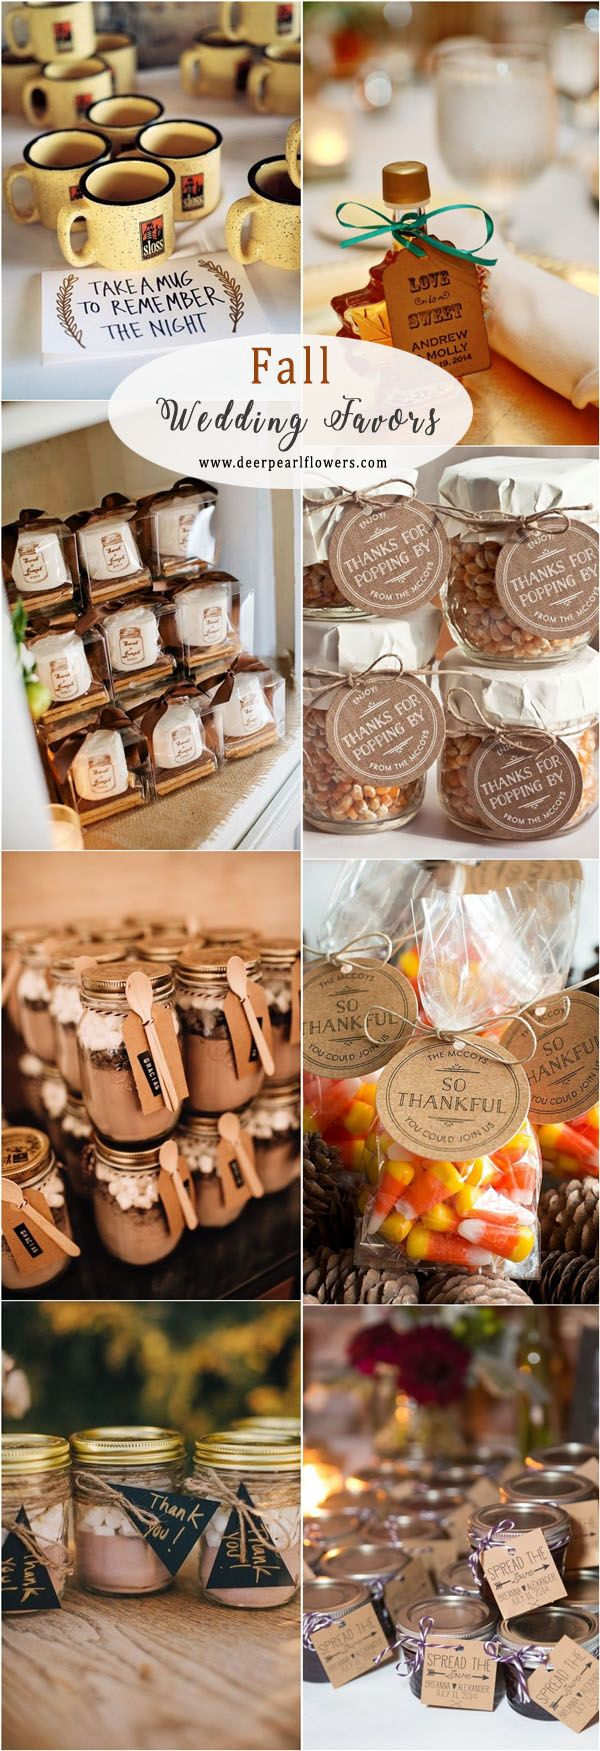 Rustic Fall Wedding Ideas Fall Wedding Favors Rustic Fall Wedding Favors Wedding Favors Fall Rustic Wedding Favors